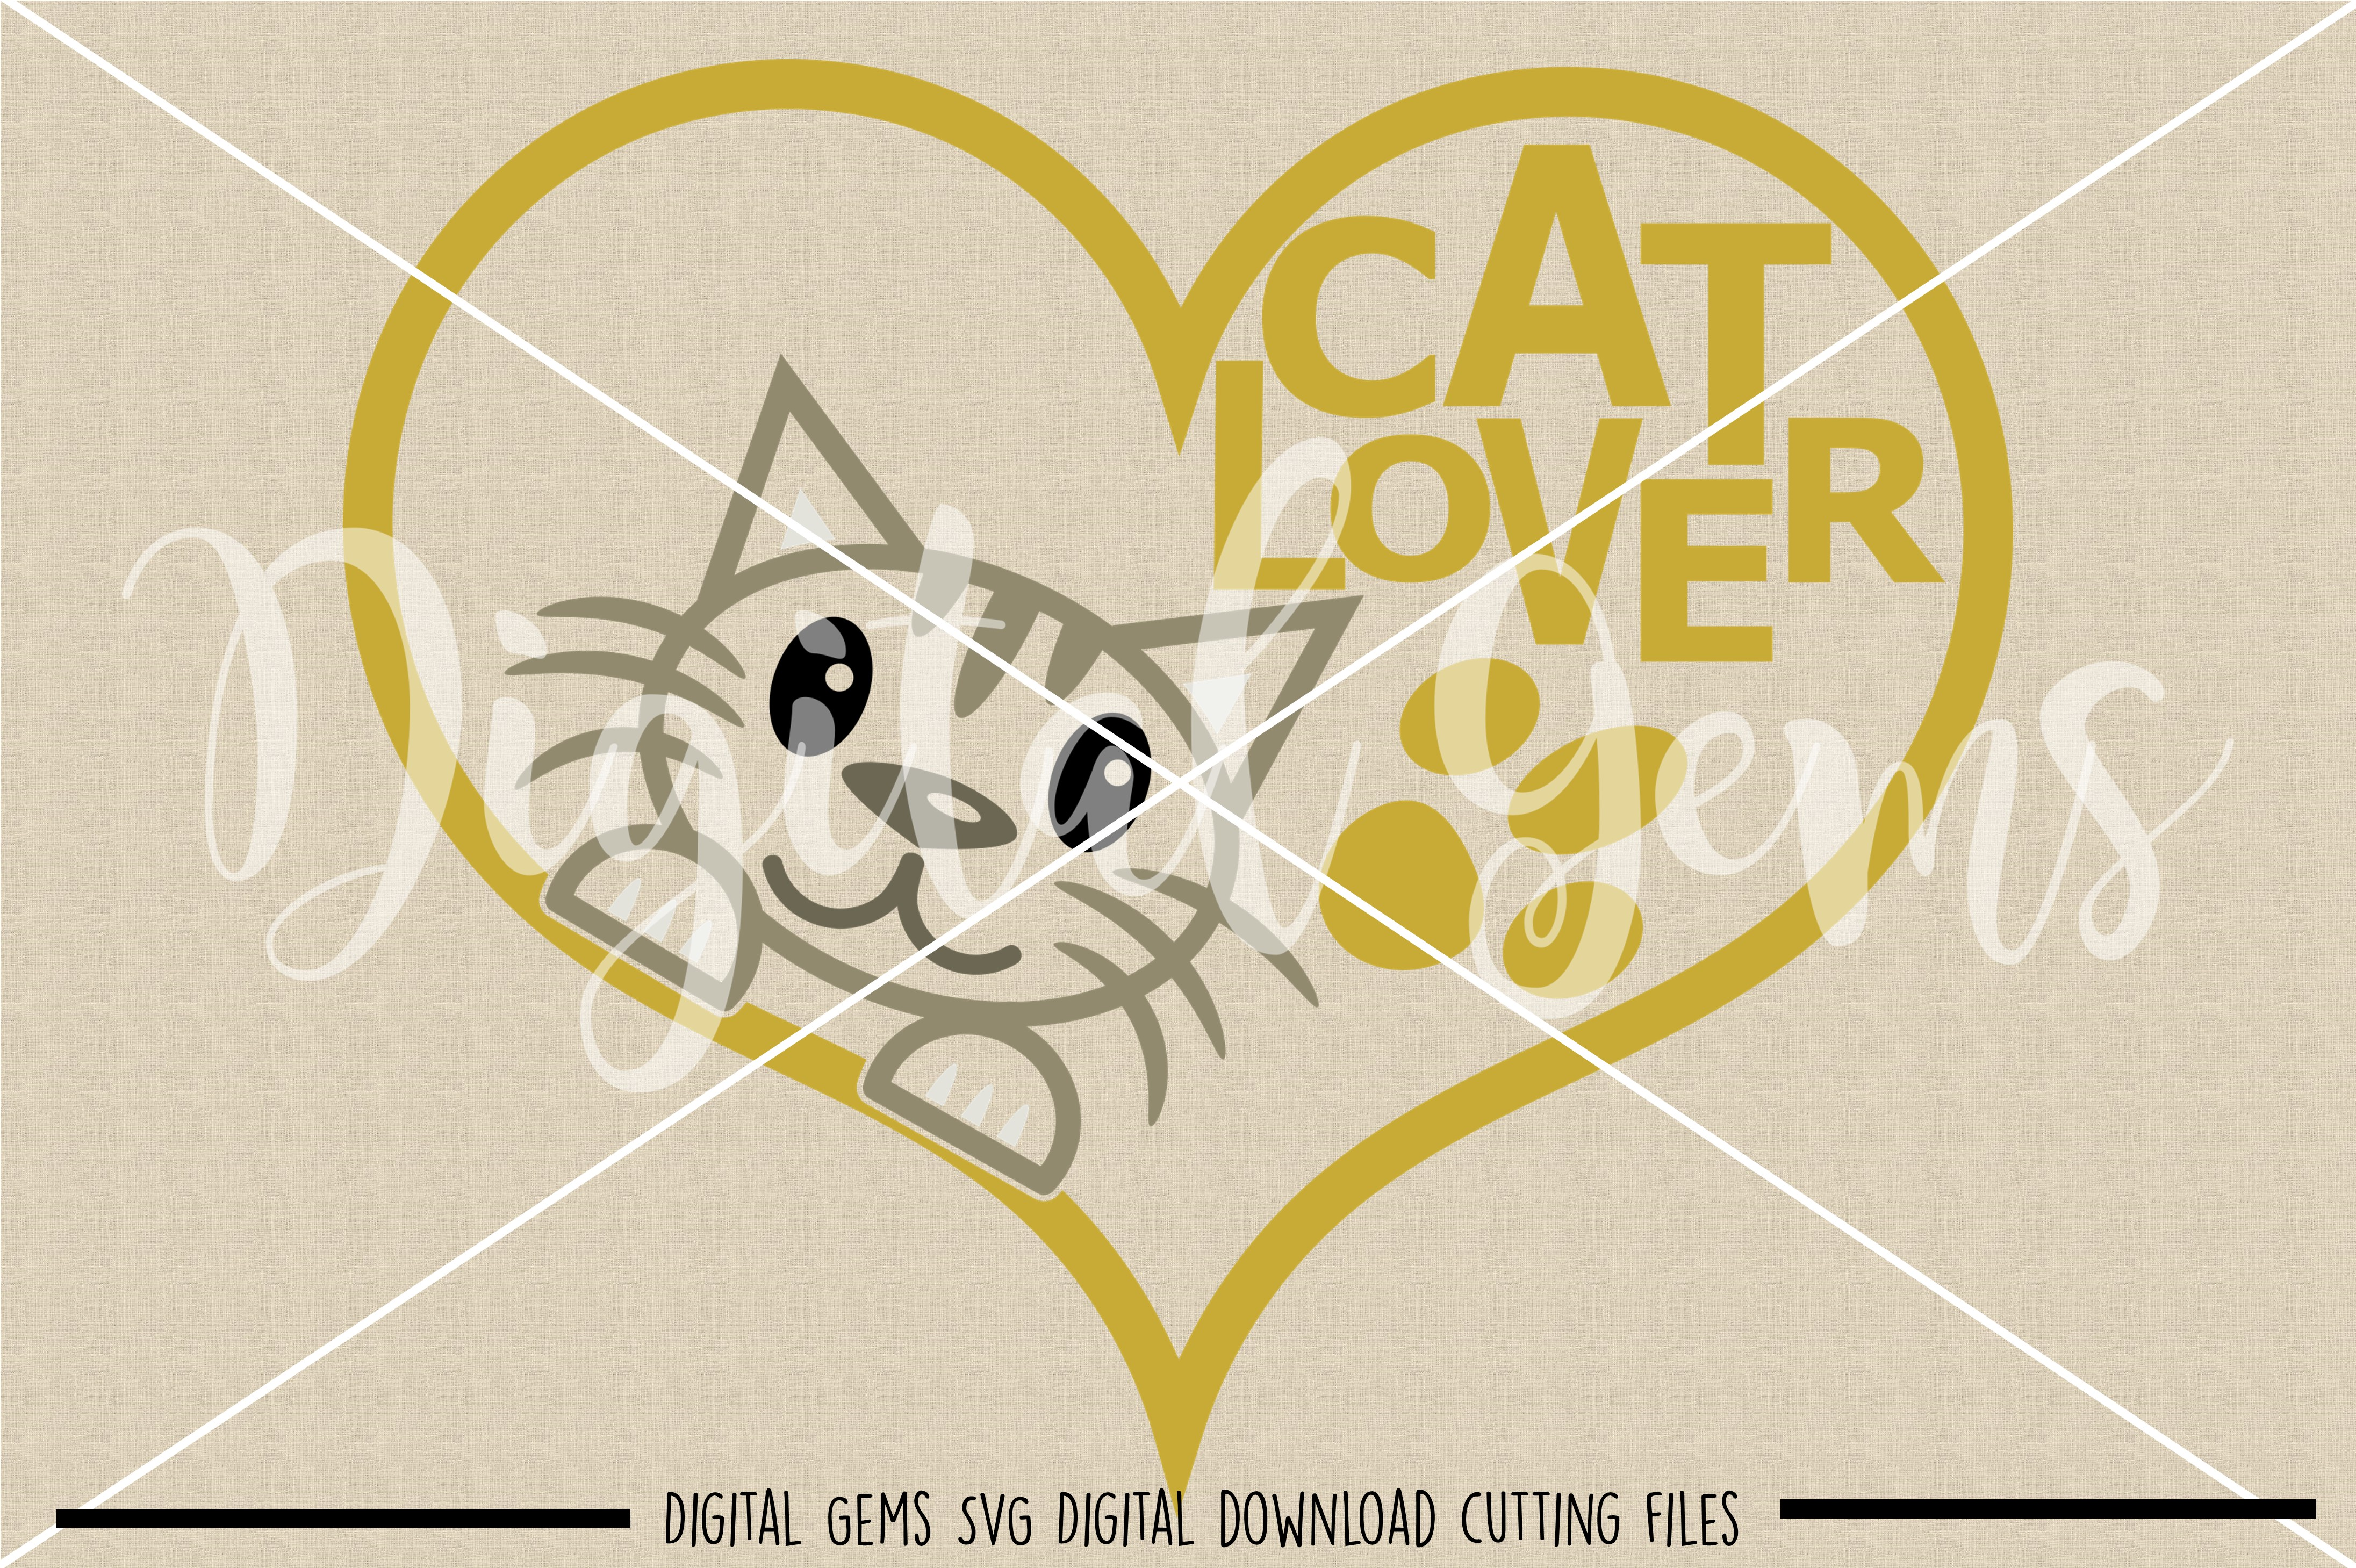 Cat lover SVG / PNG / EPS / DXF Files example image 2